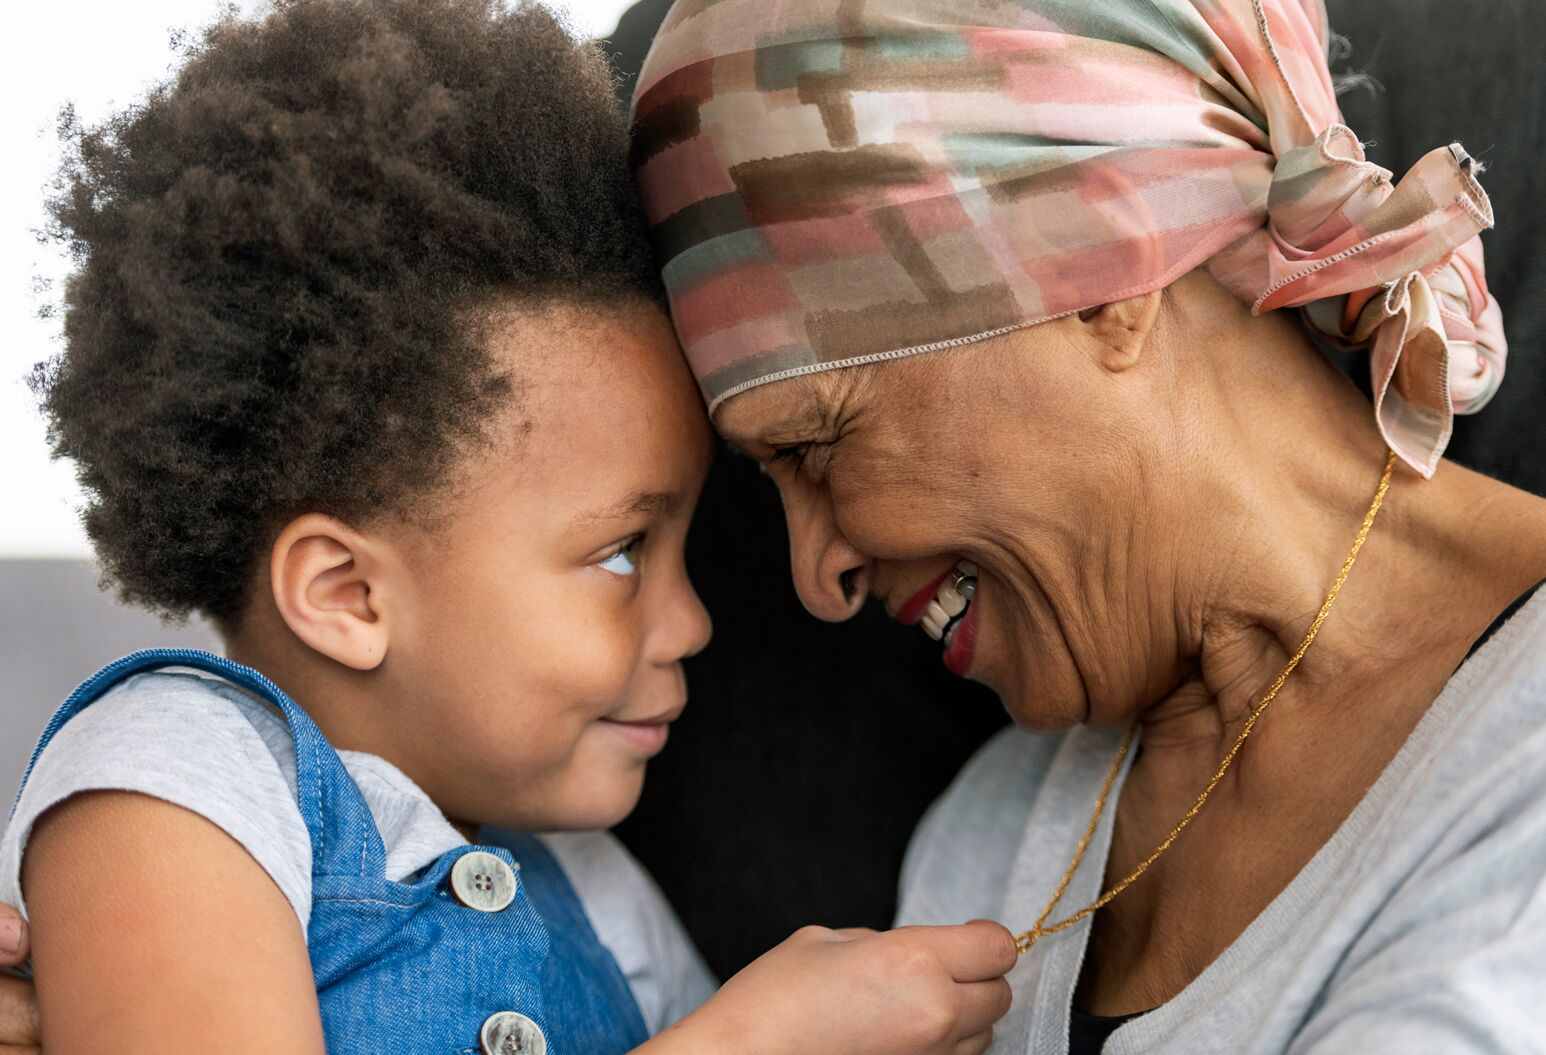 A child grabs her grandmother's necklace. The grandmother is wearing a scarf on her head after losing her hair during pancreatic cancer treatment.